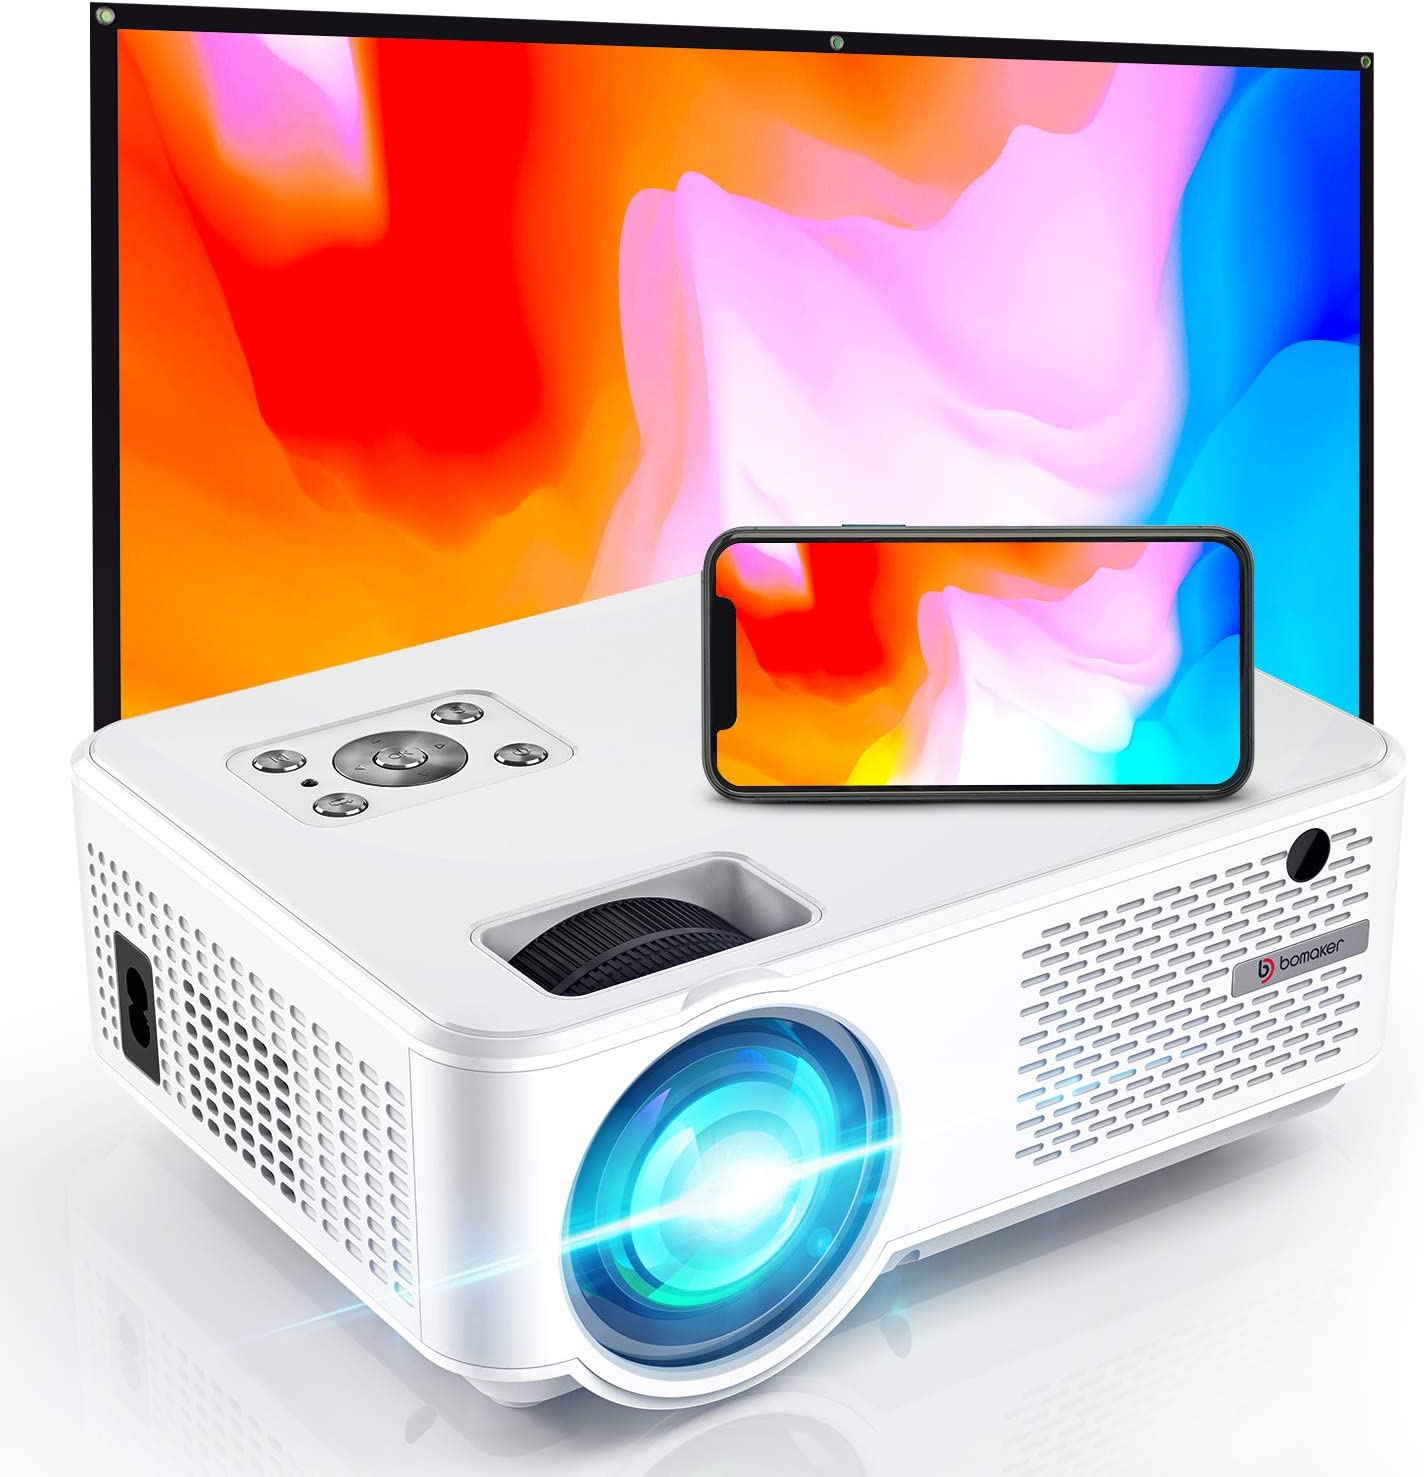 BOMAKER Wifi projector 7000 lumens 720p 300 inches